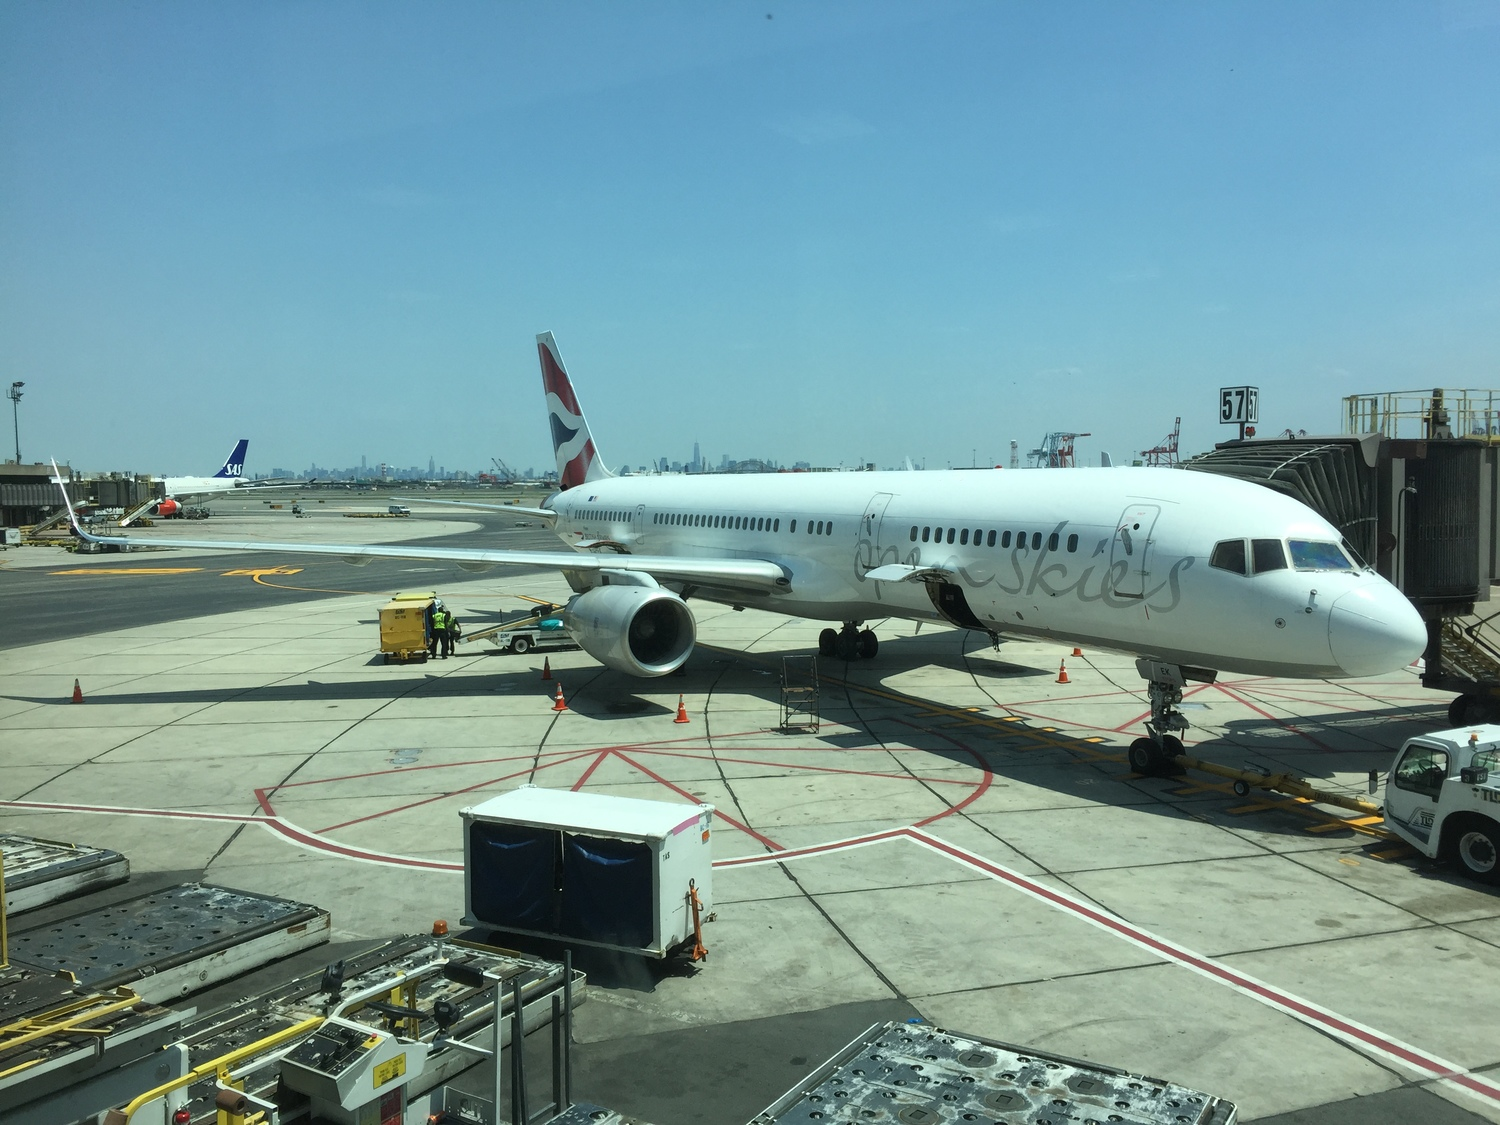 I took advantage of the AARP discount to get a great fare on OpenSkies from Newark to Paris!